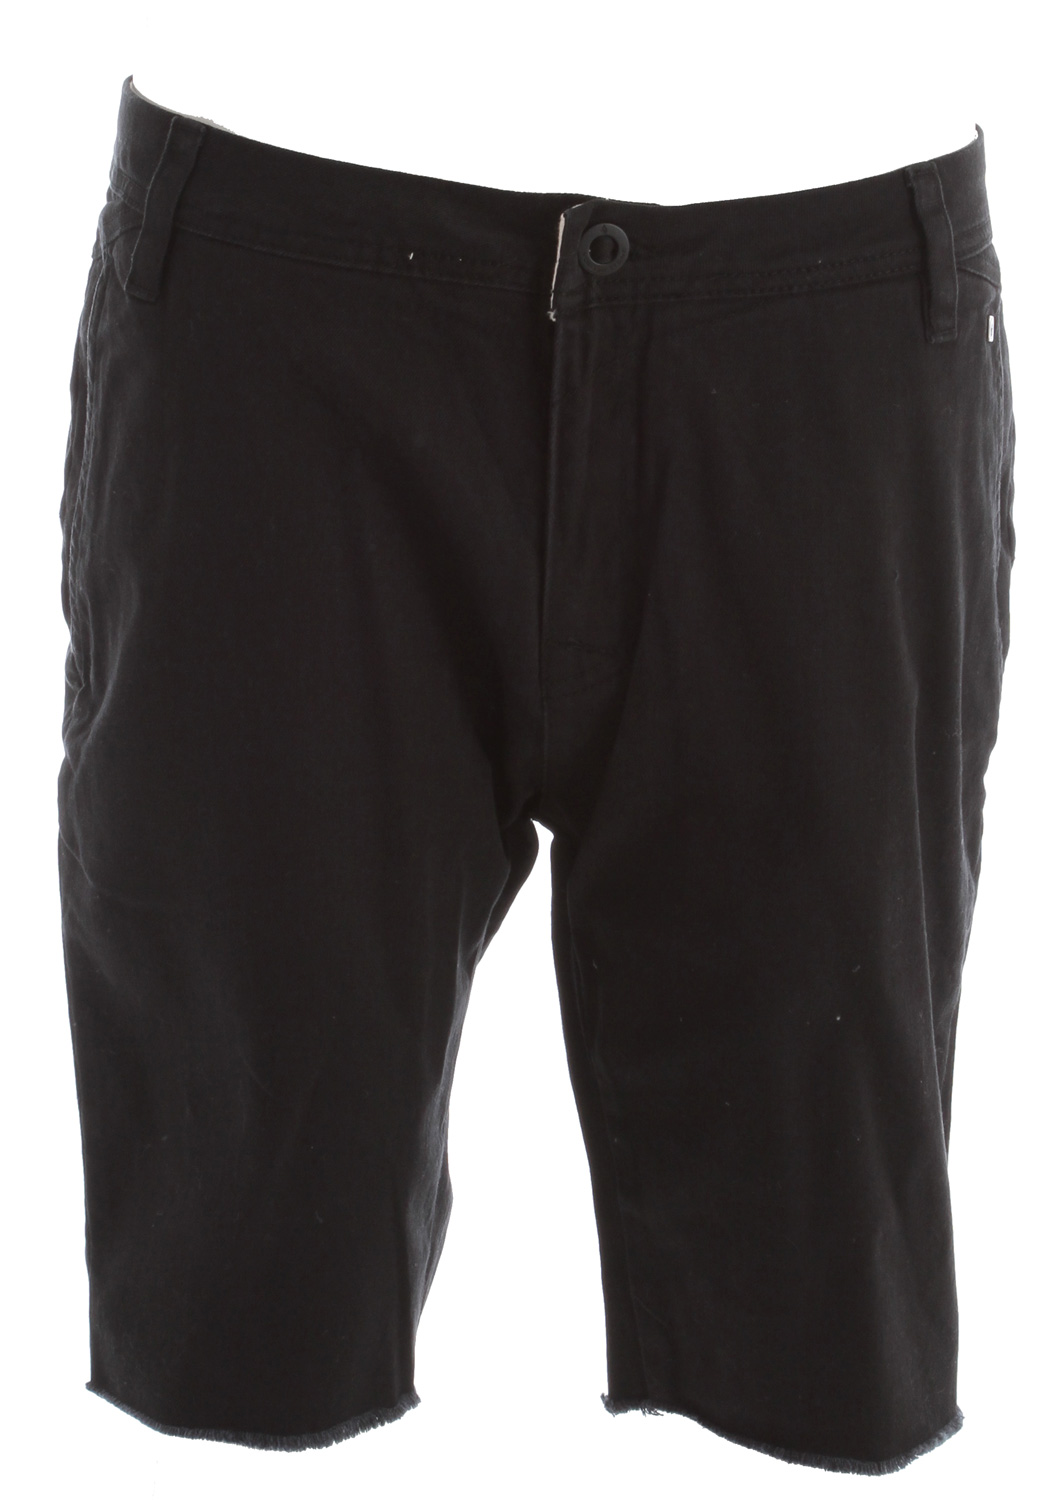 "Surf Key Features of the Volcom Cut Off Chino 21"" 2X4 Shorts: 21"" outseam Tight leg fit chino short Cuffed raw hem Welt back pocket Pre-laundered 97% cotton/3% elastane stretch twill - $33.95"